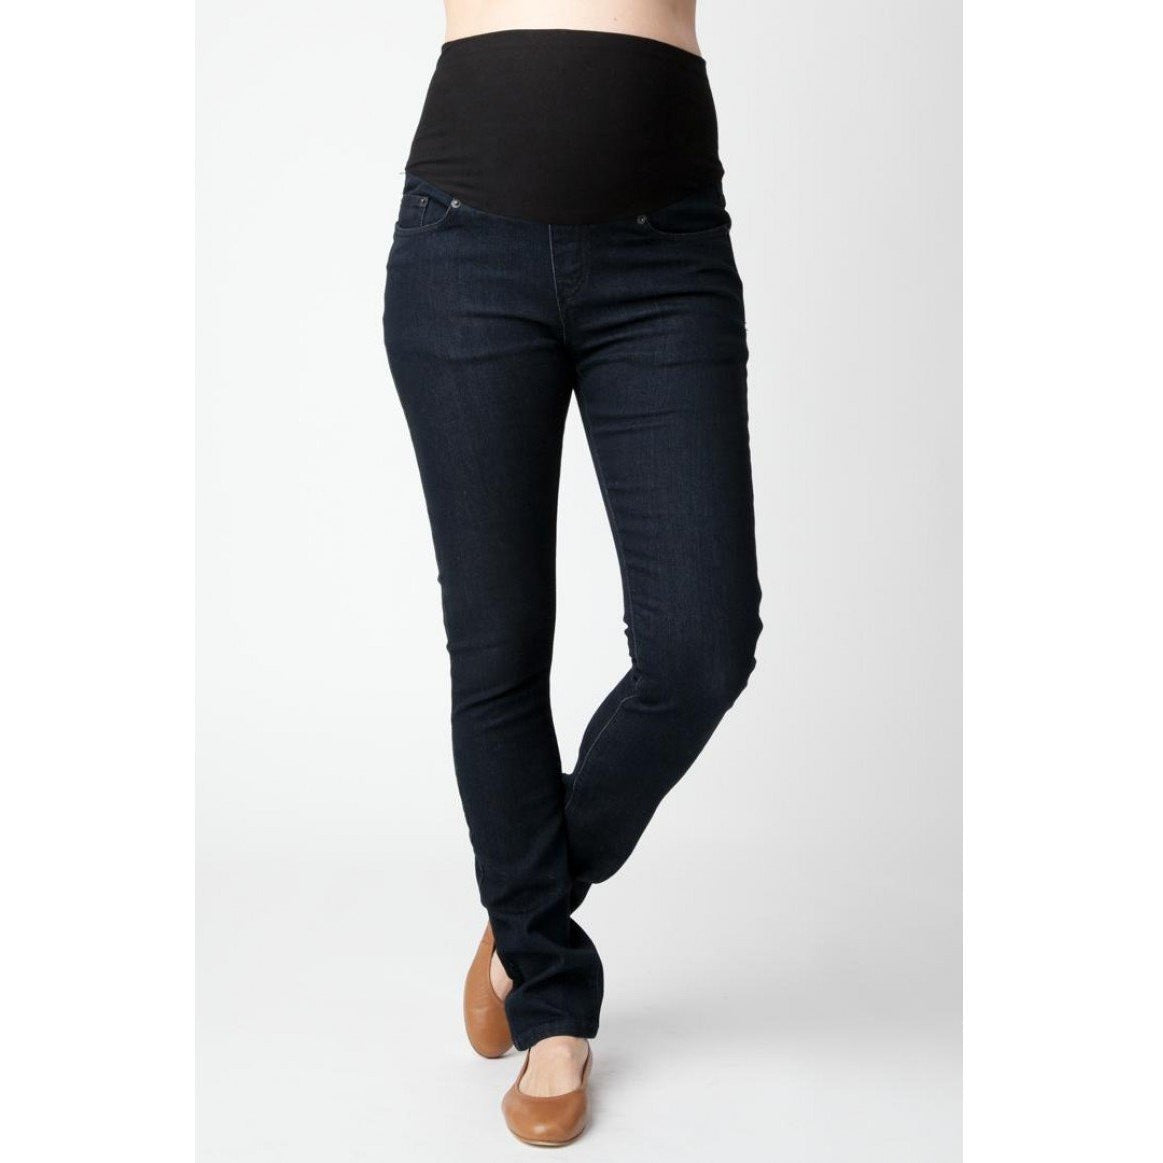 (Large only) Urban Slim Jean - Ink